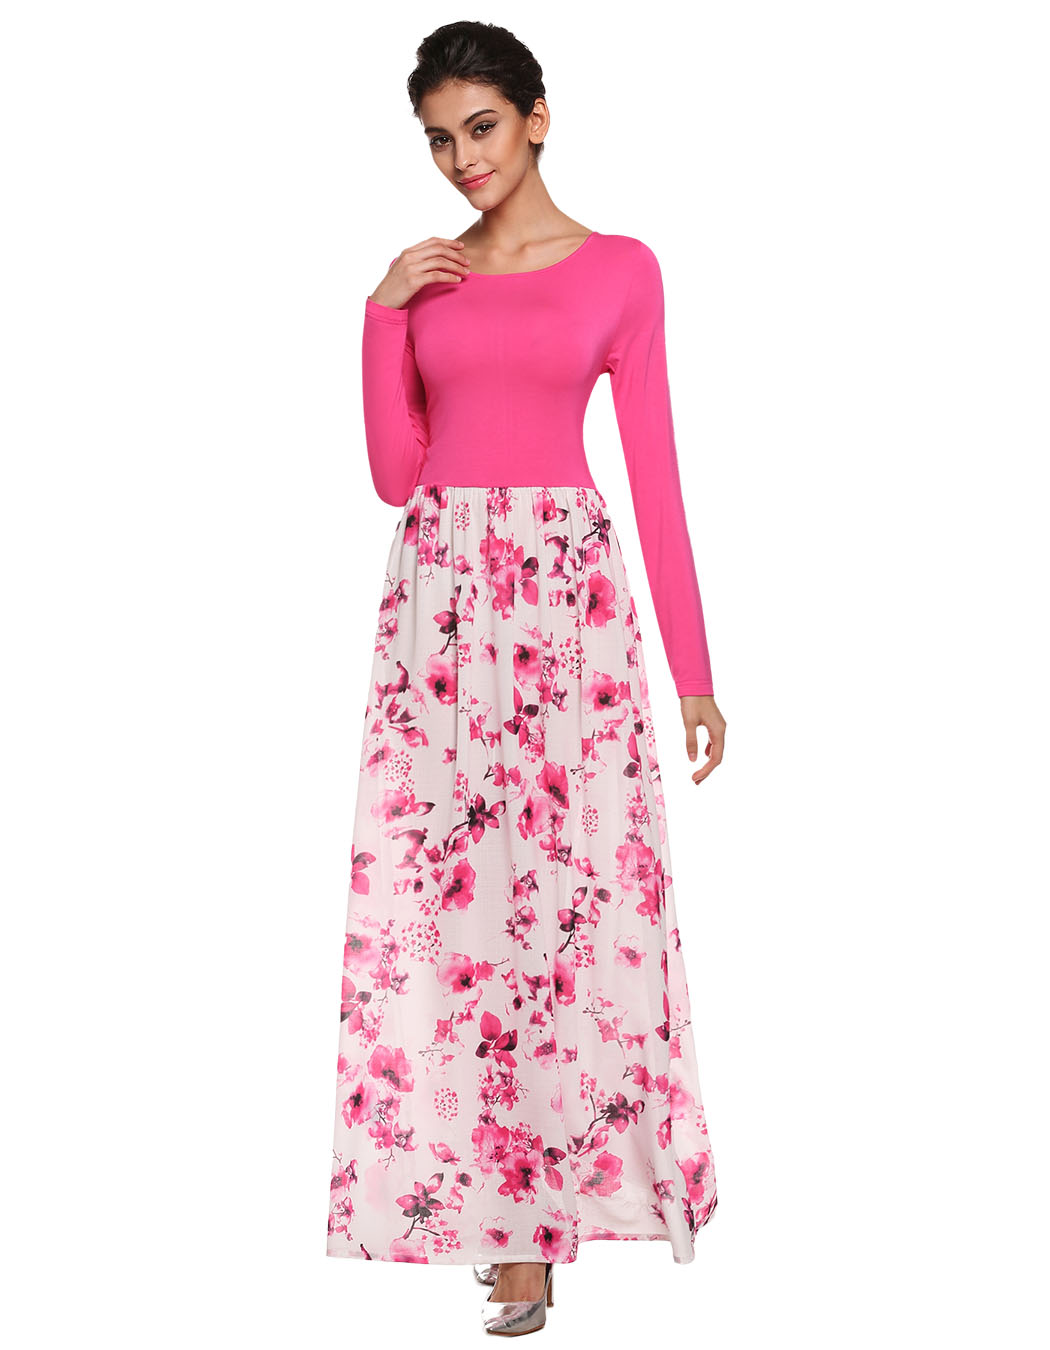 Pink Floral Dress Long Sleeve